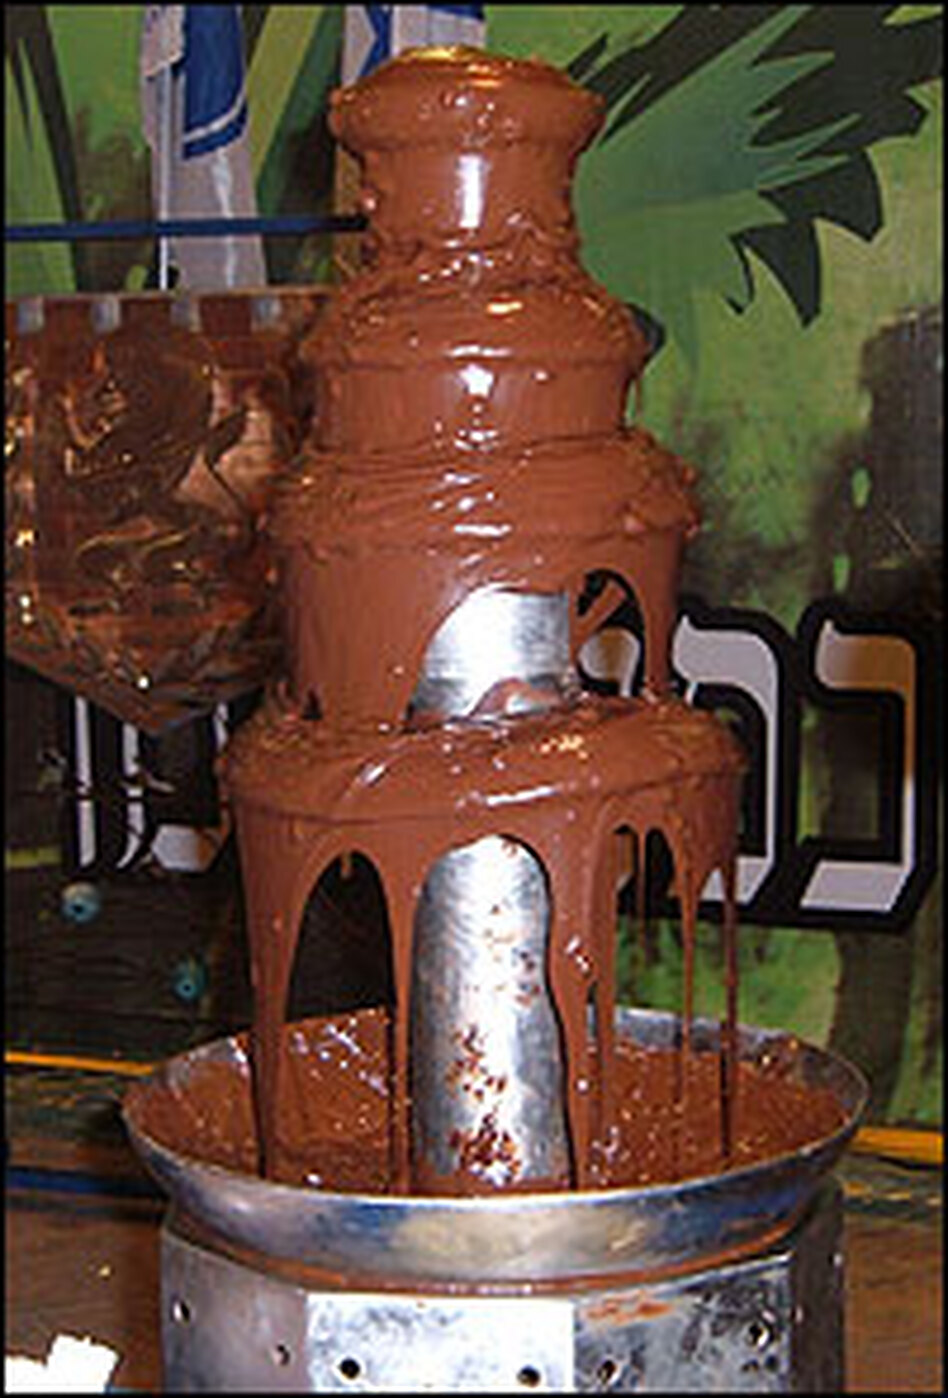 At this fountain of cascading chocolate, kids can get chocolate-covered marshmallows.